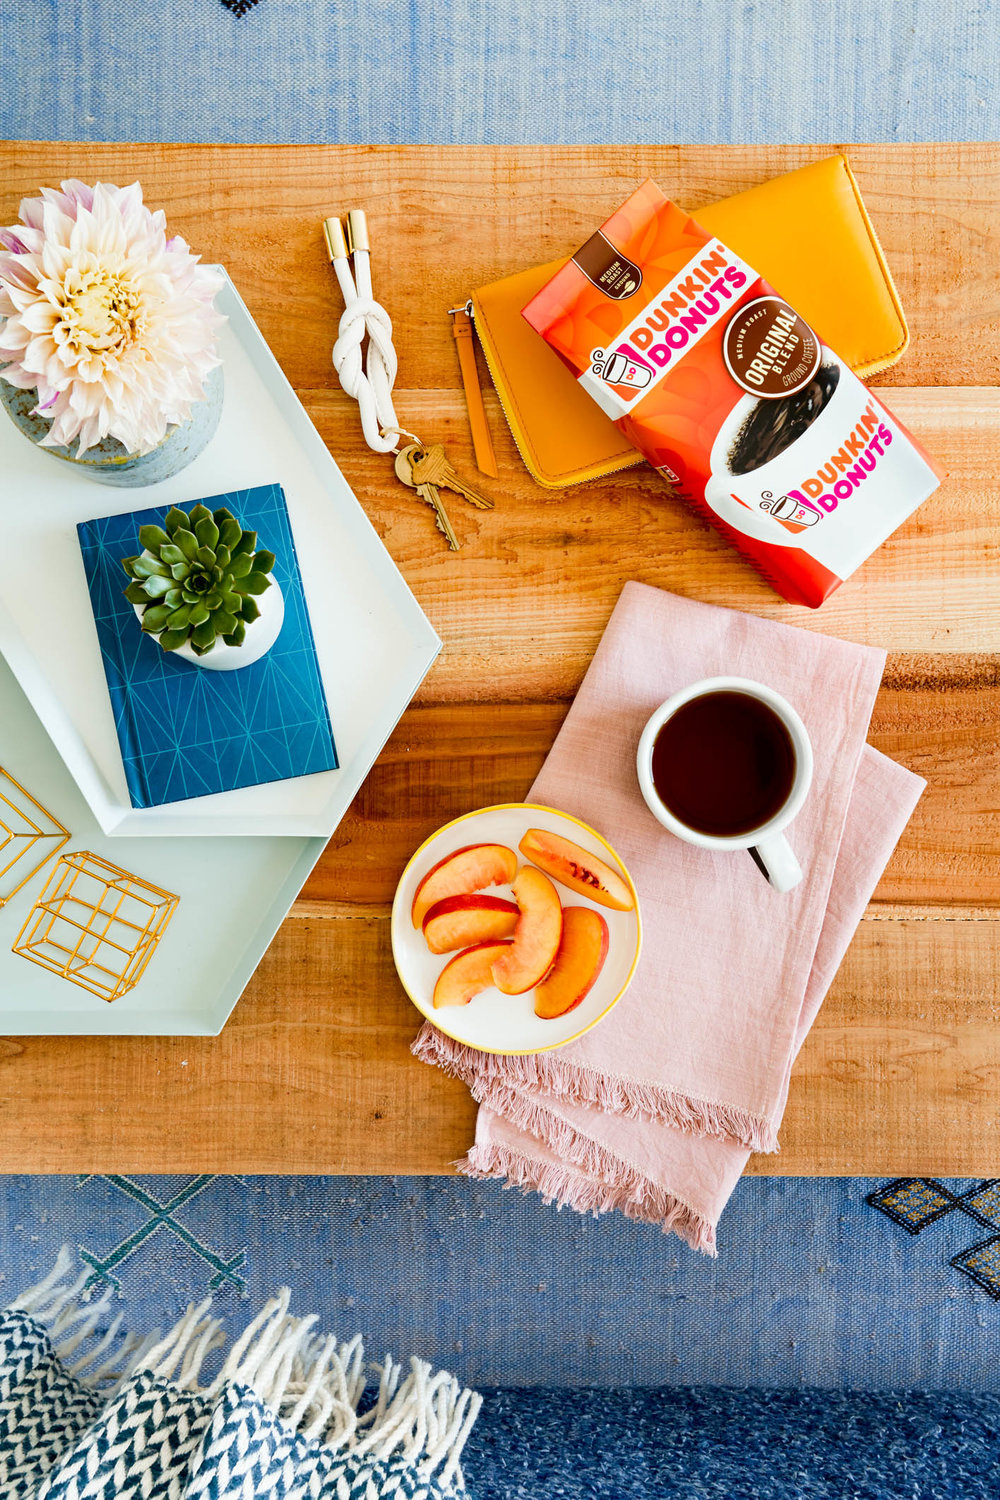 dunkin-donut-coffee-table-scene.jpg